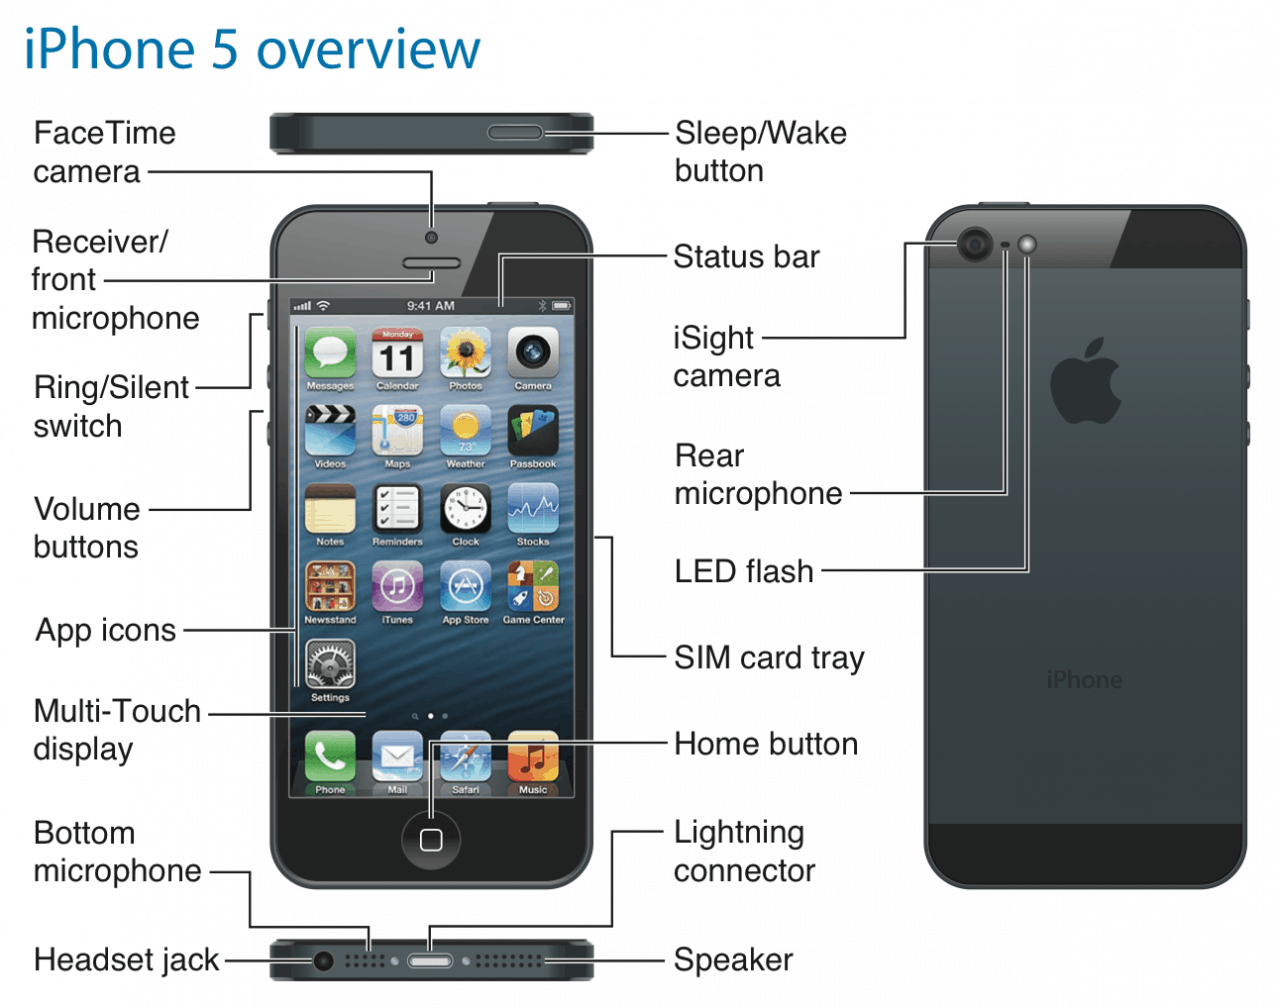 iphone 5 camera replacement cost india